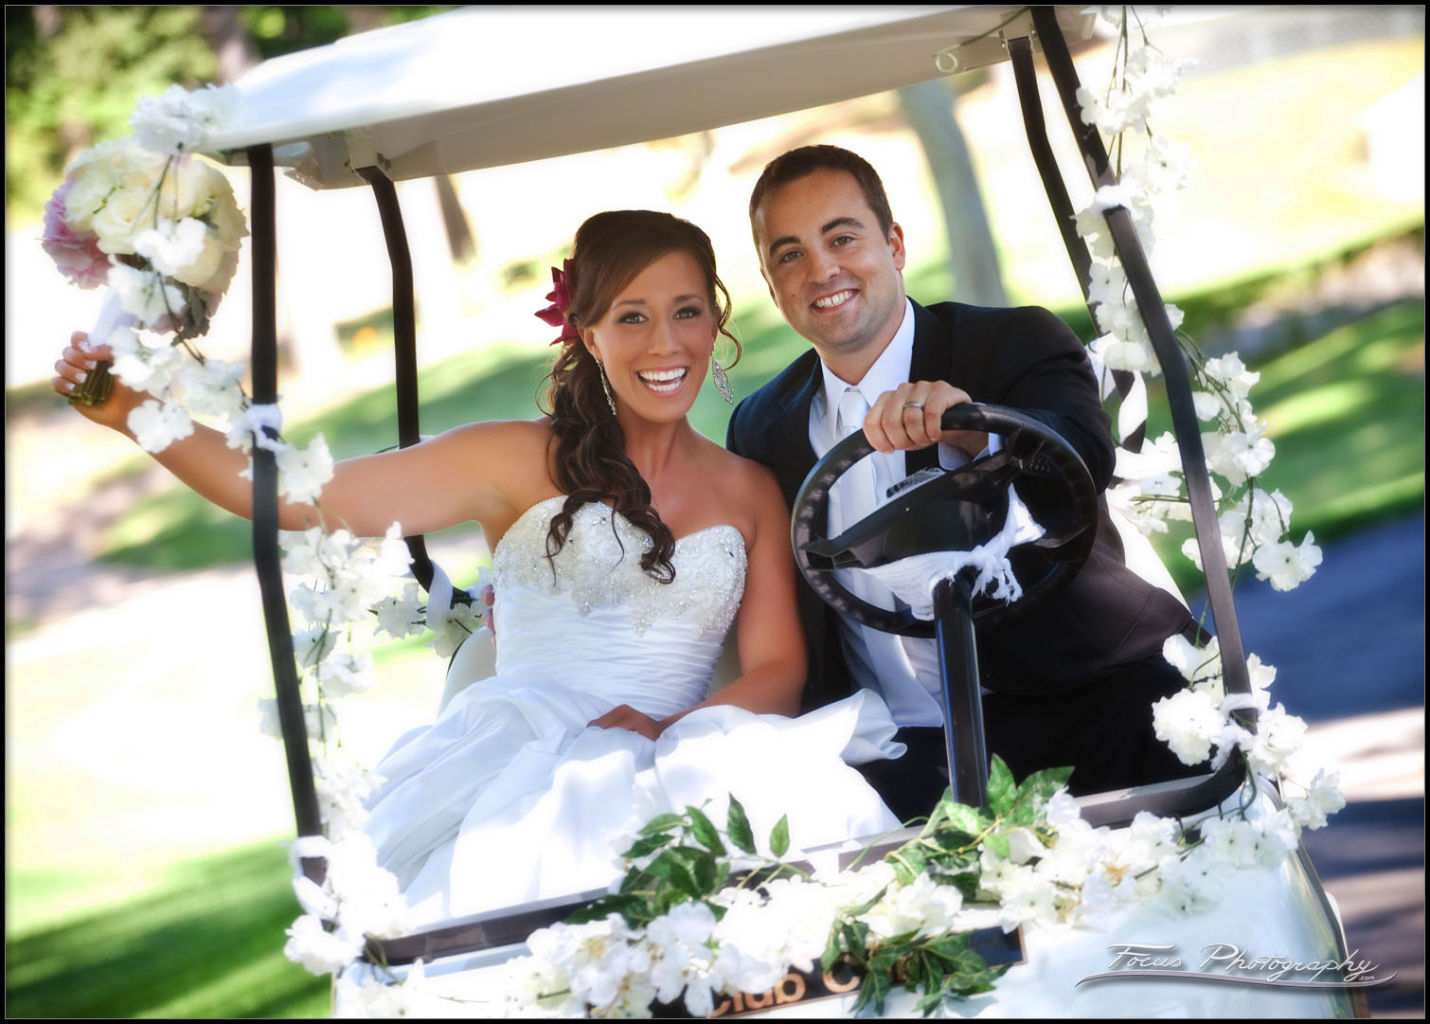 Dunegrass Golf Club Wedding of Melanie and Ben